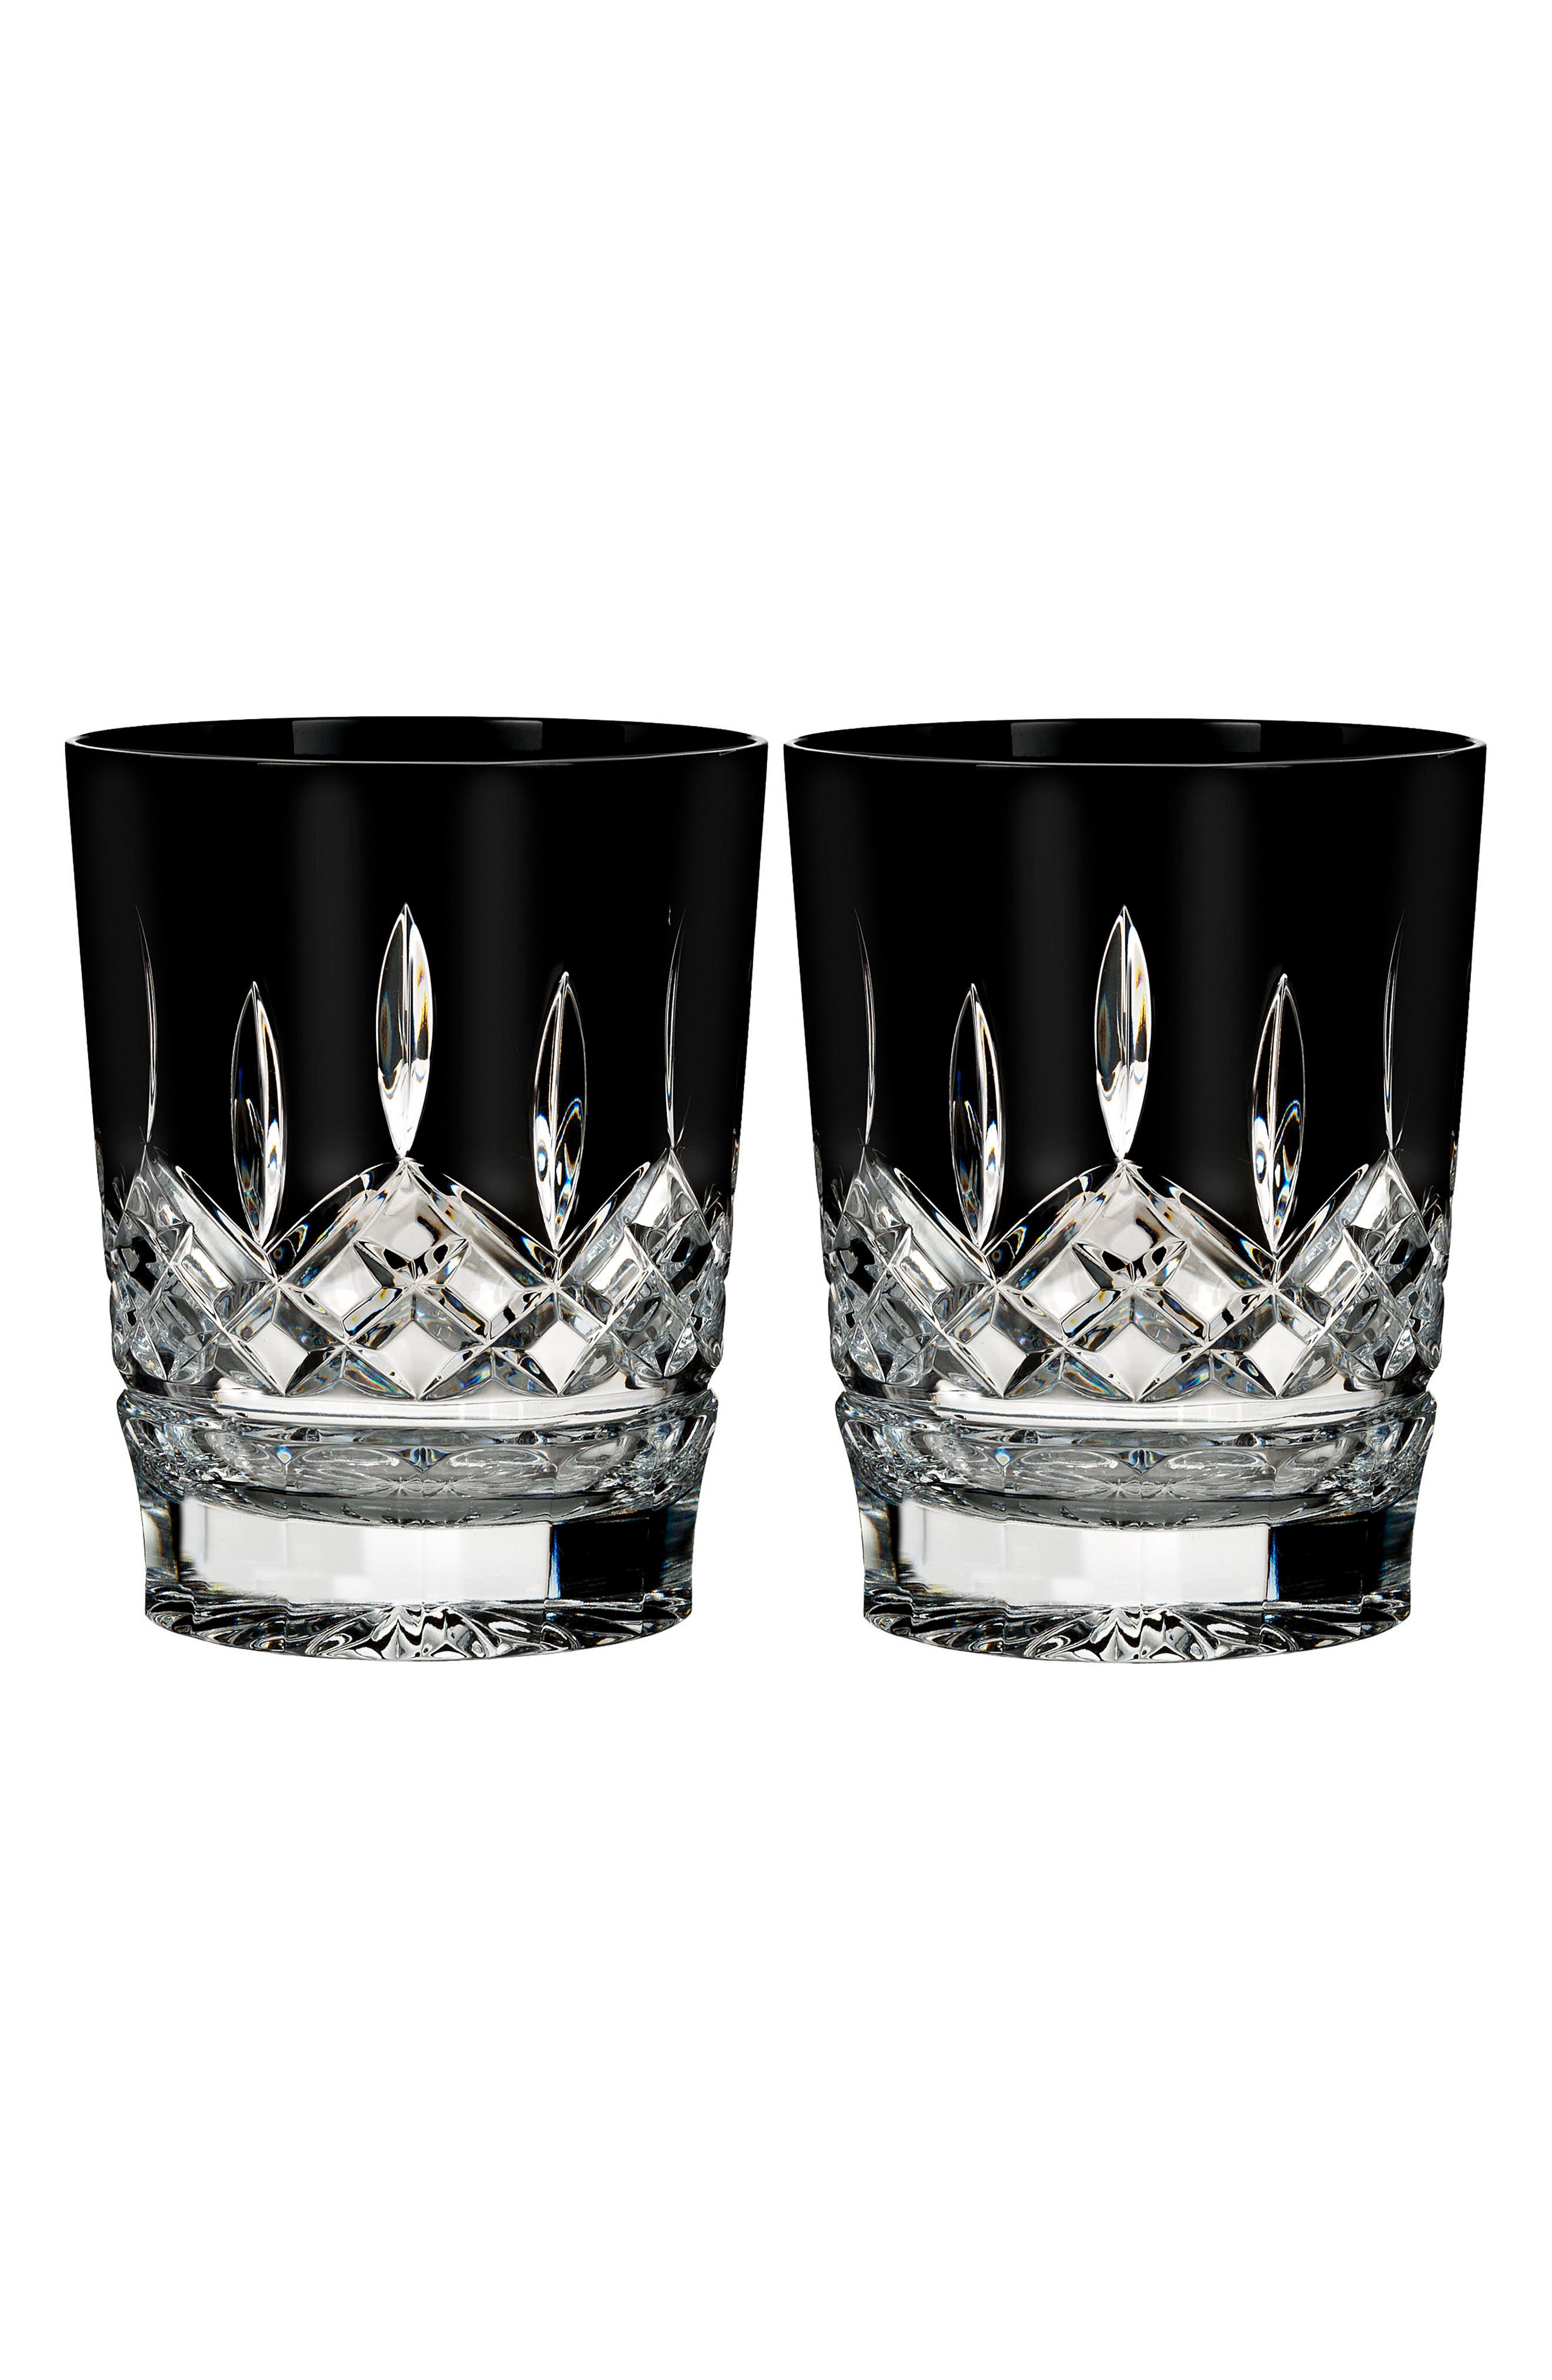 Lismore Diamond Set of 2 Black Lead Crystal Double Old Fashioned Glasses,                             Main thumbnail 1, color,                             001